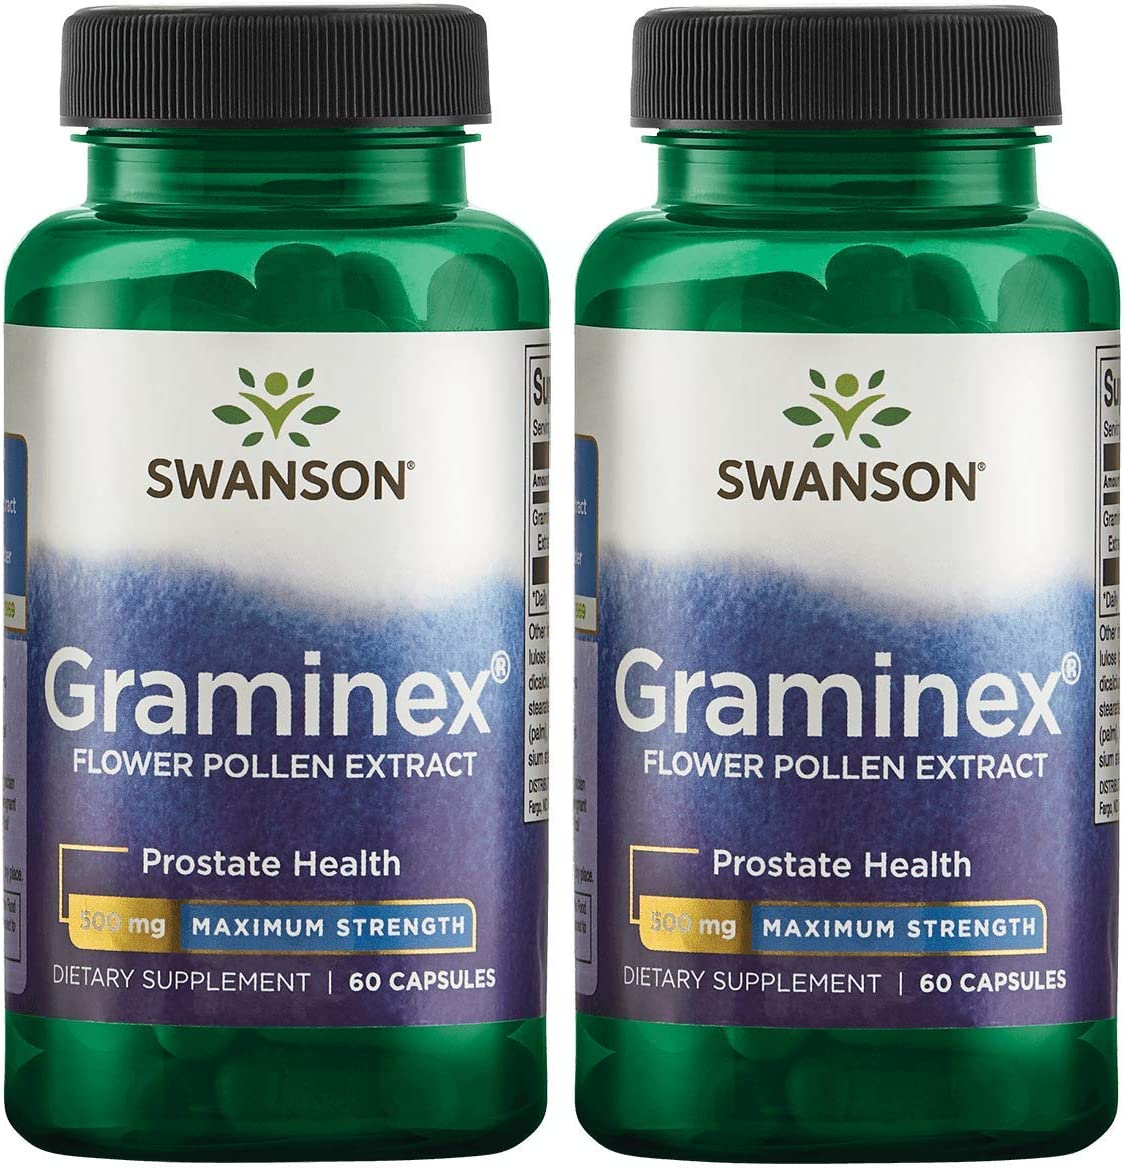 Swanson Graminex Flower Pollen Extract - Maximum Strength 500 mg 60 Caps 2 Pack